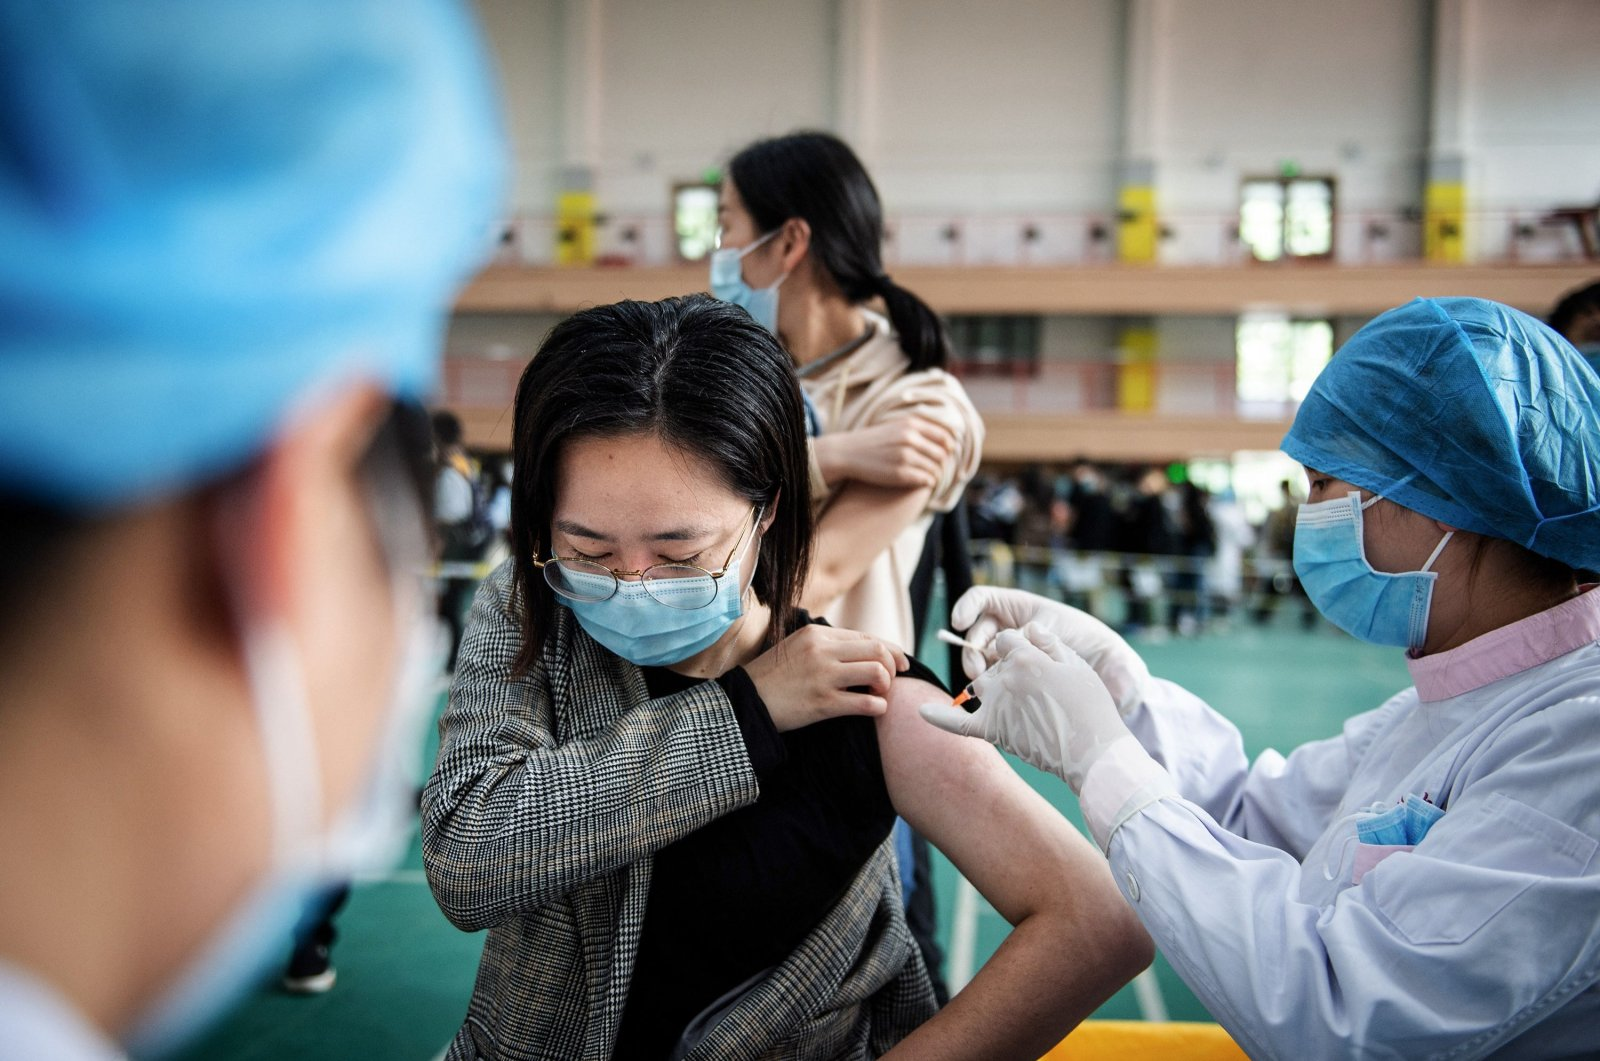 A university student receives the China National Biotec Group (CNBG) COVID-19 vaccine at a university in Wuhan, in China's central Hubei province, April 28, 2021. (AFP Photo)